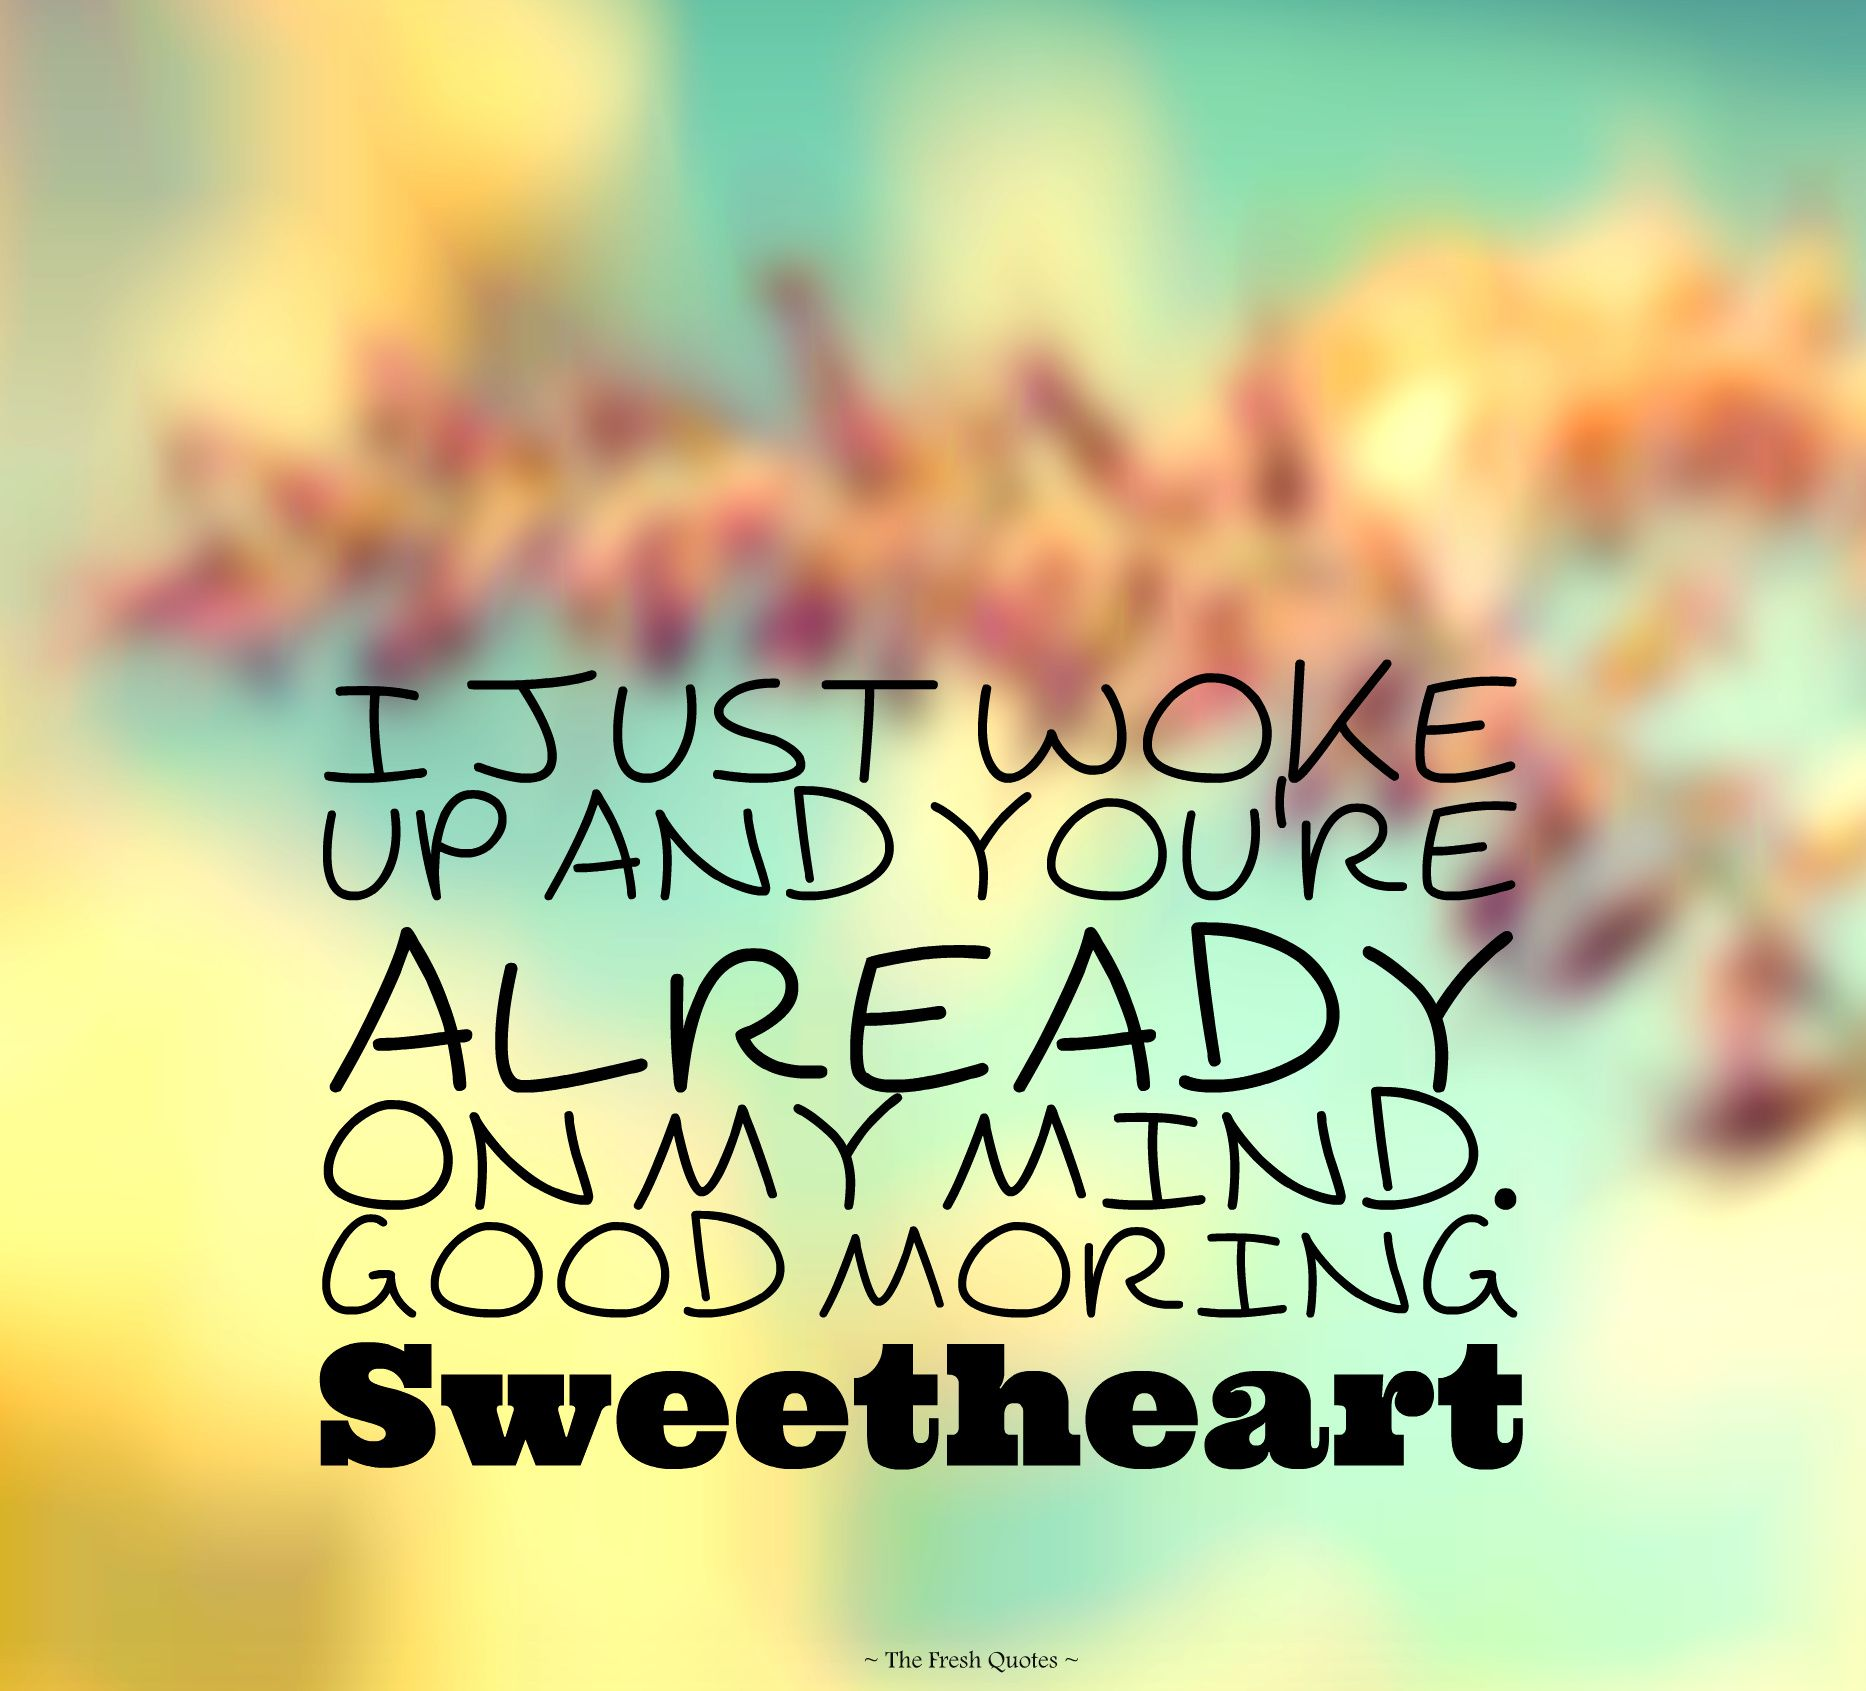 Good Morning My Love Quotes Unique Romanticgoodmorningwishesgirlfriendboyfriendhimhergood